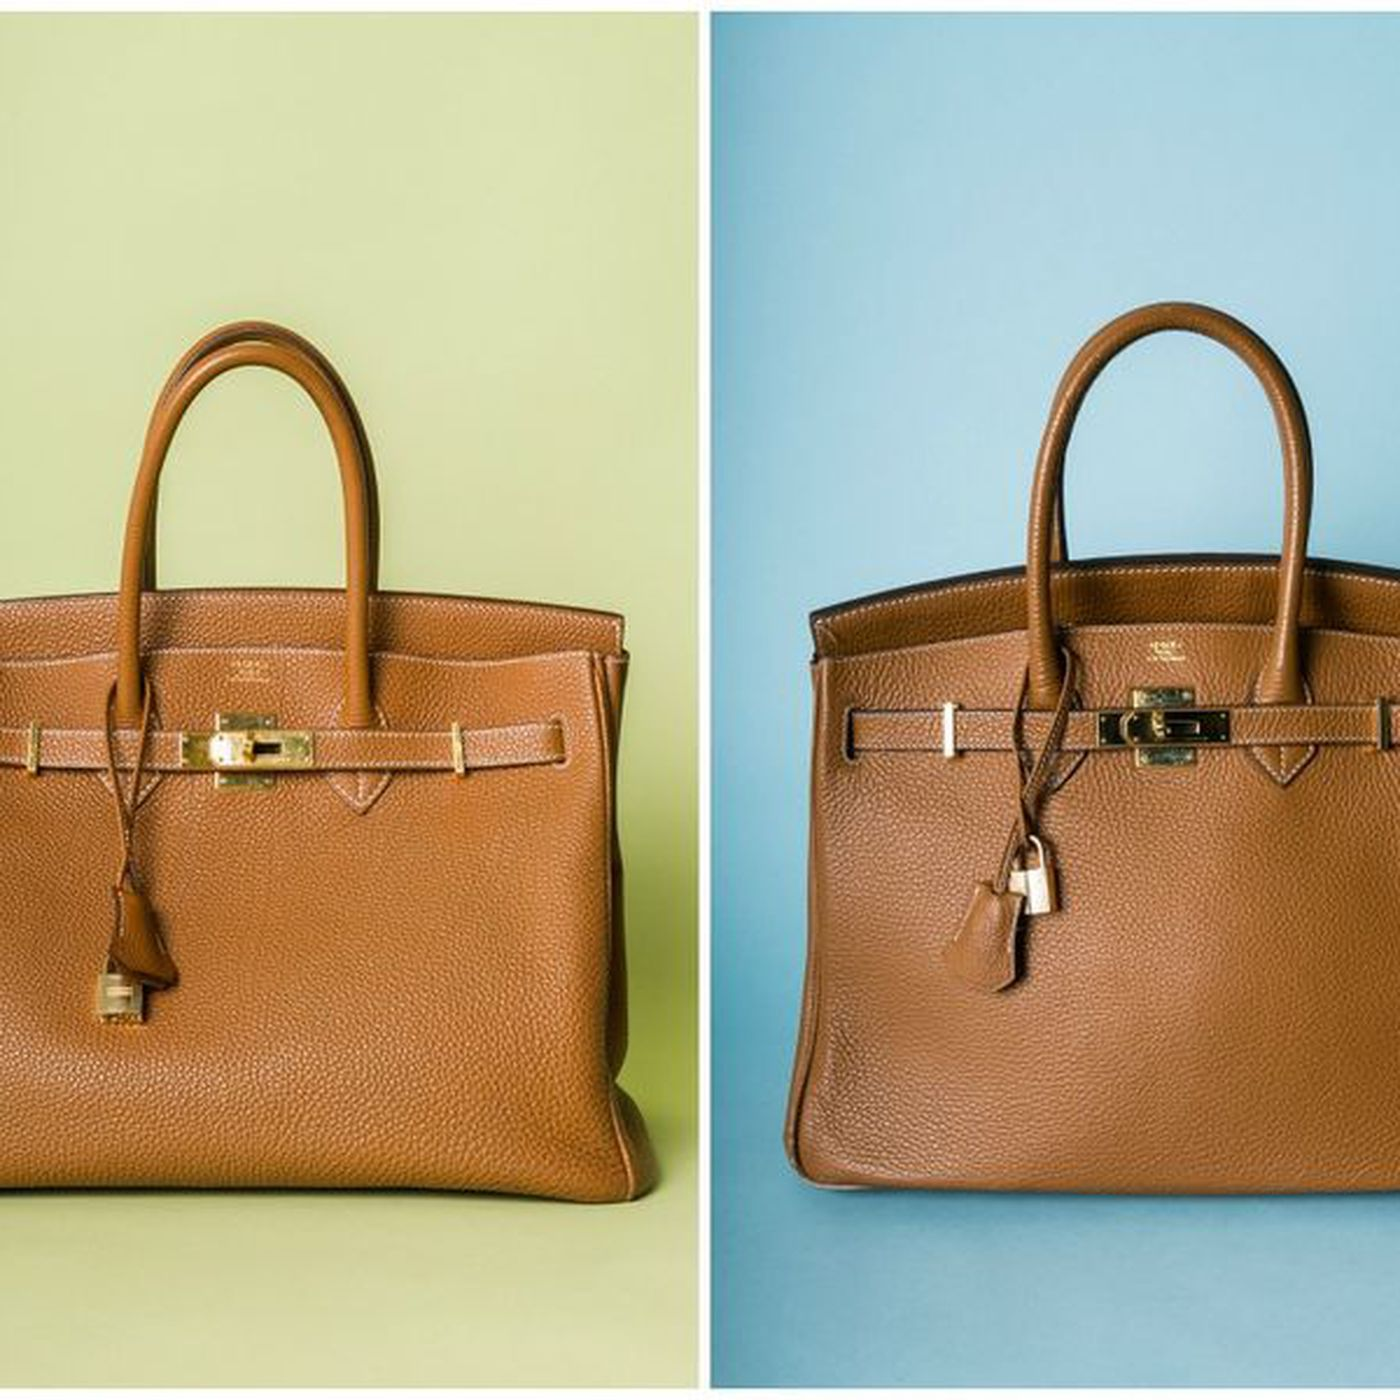 c4e7c5a3388 Here s How to Spot the Difference Between Real and Fake Designer Bags -  Racked